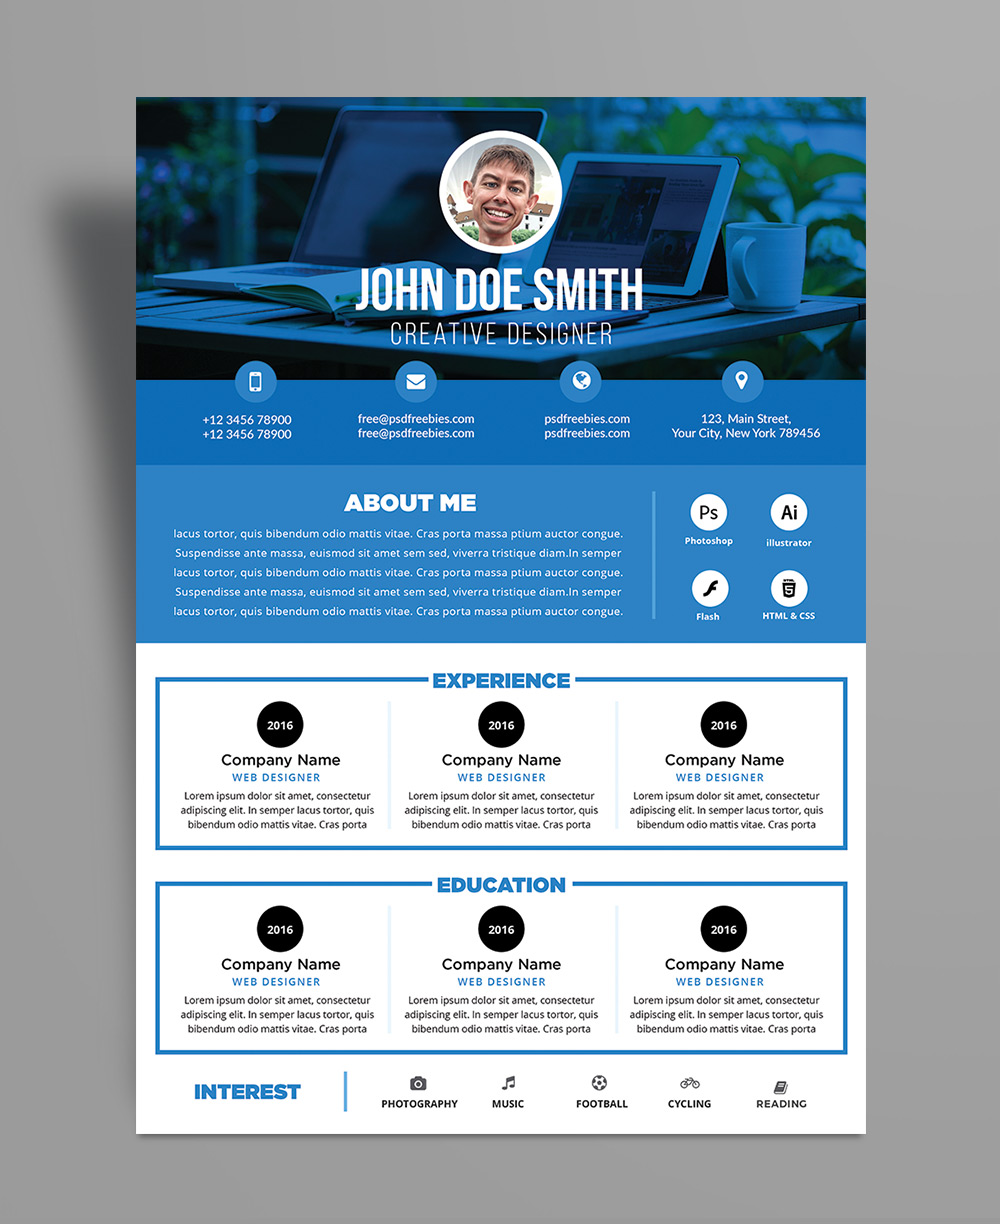 professional resume cv design template psd file good resume professional resume cv design template psd file